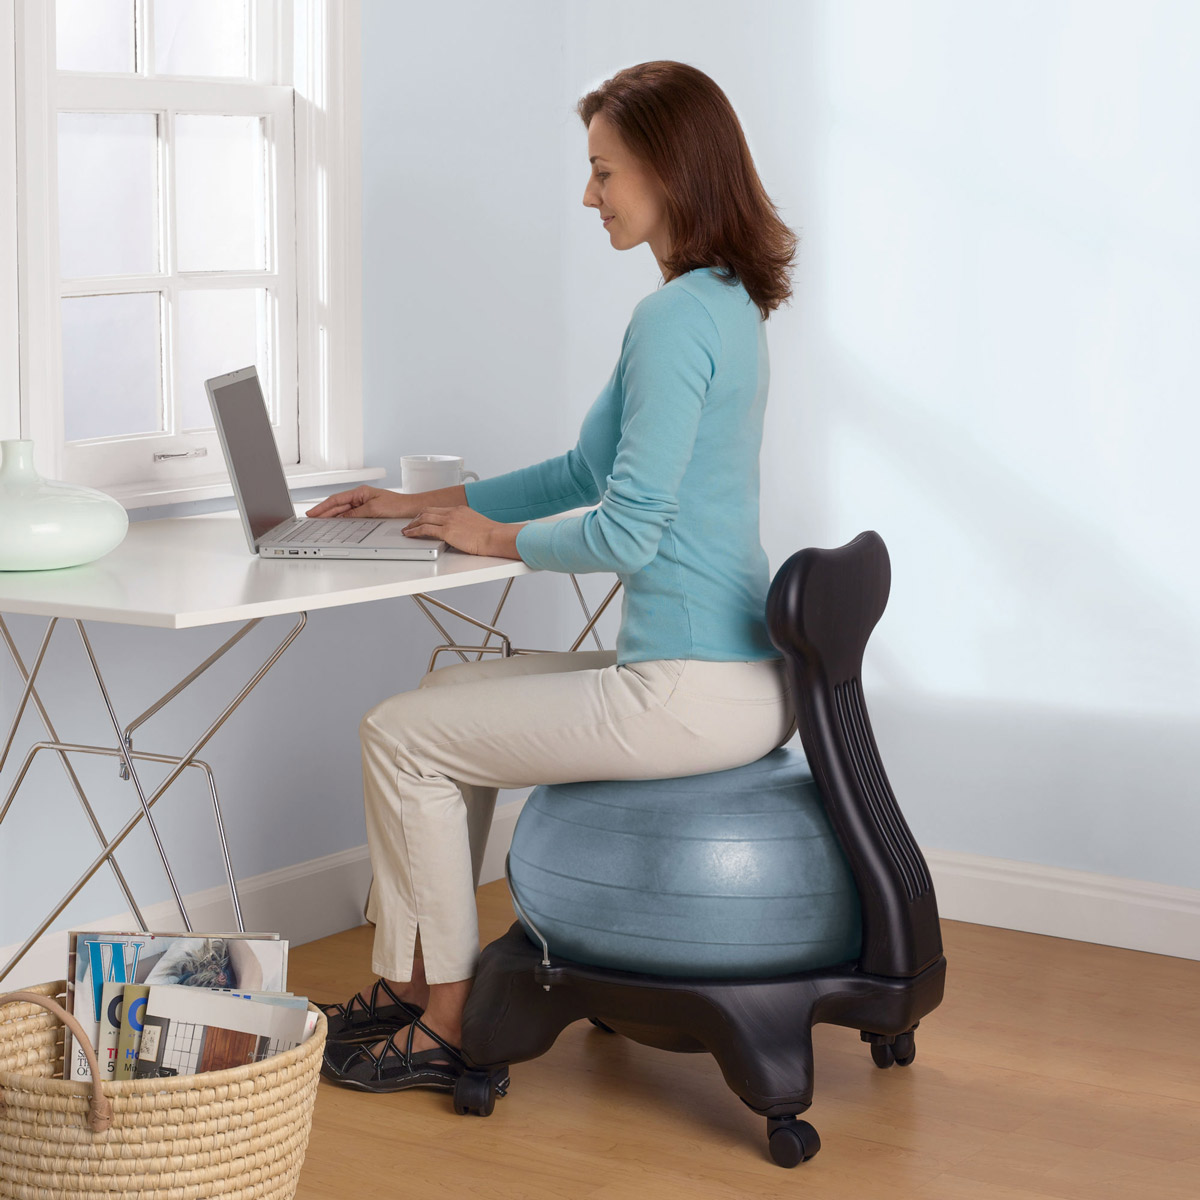 10 Reasons to Use an Exercise Ball as Your Chair